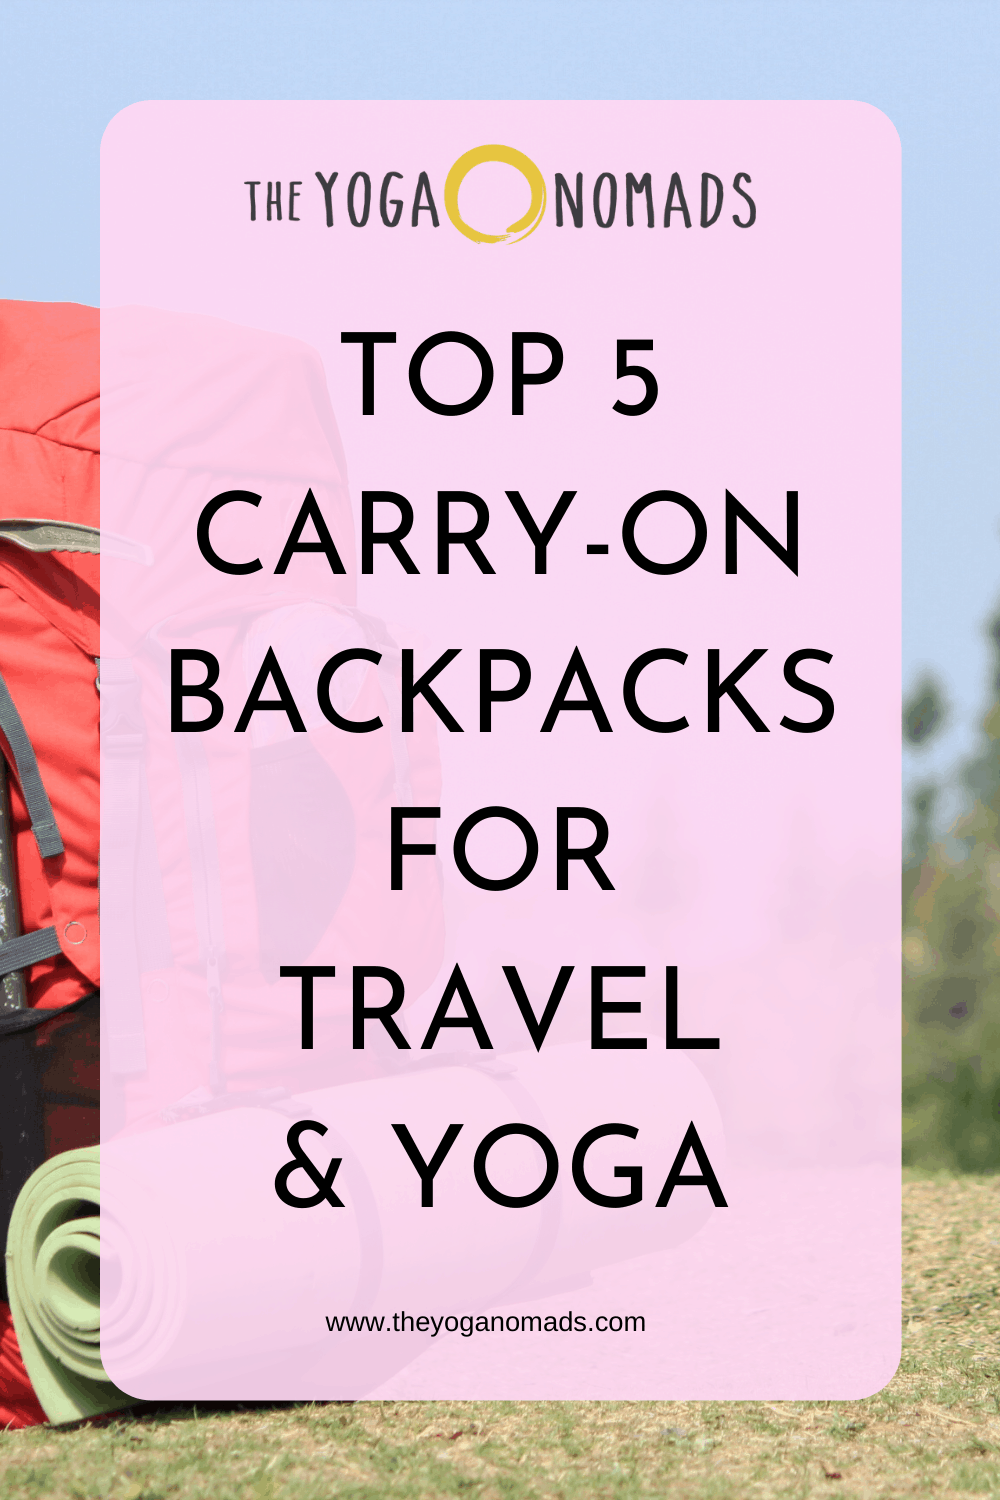 Top 5 Carry On Backpacks for Travel and Yoga 2